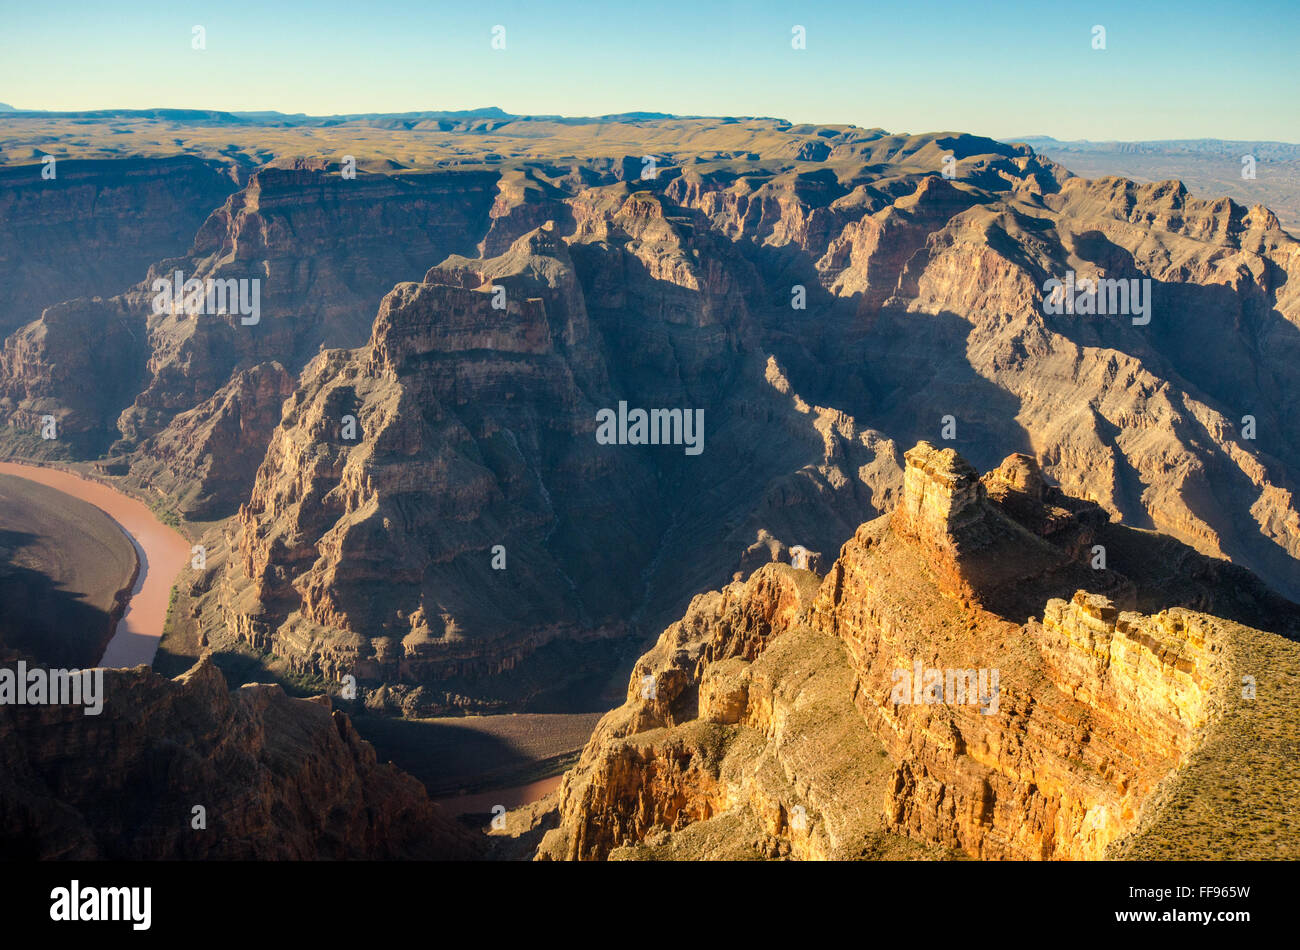 Part of the Grand Canyon, Las Vegas, Nevada. USA United States of America rock formation - Stock Image